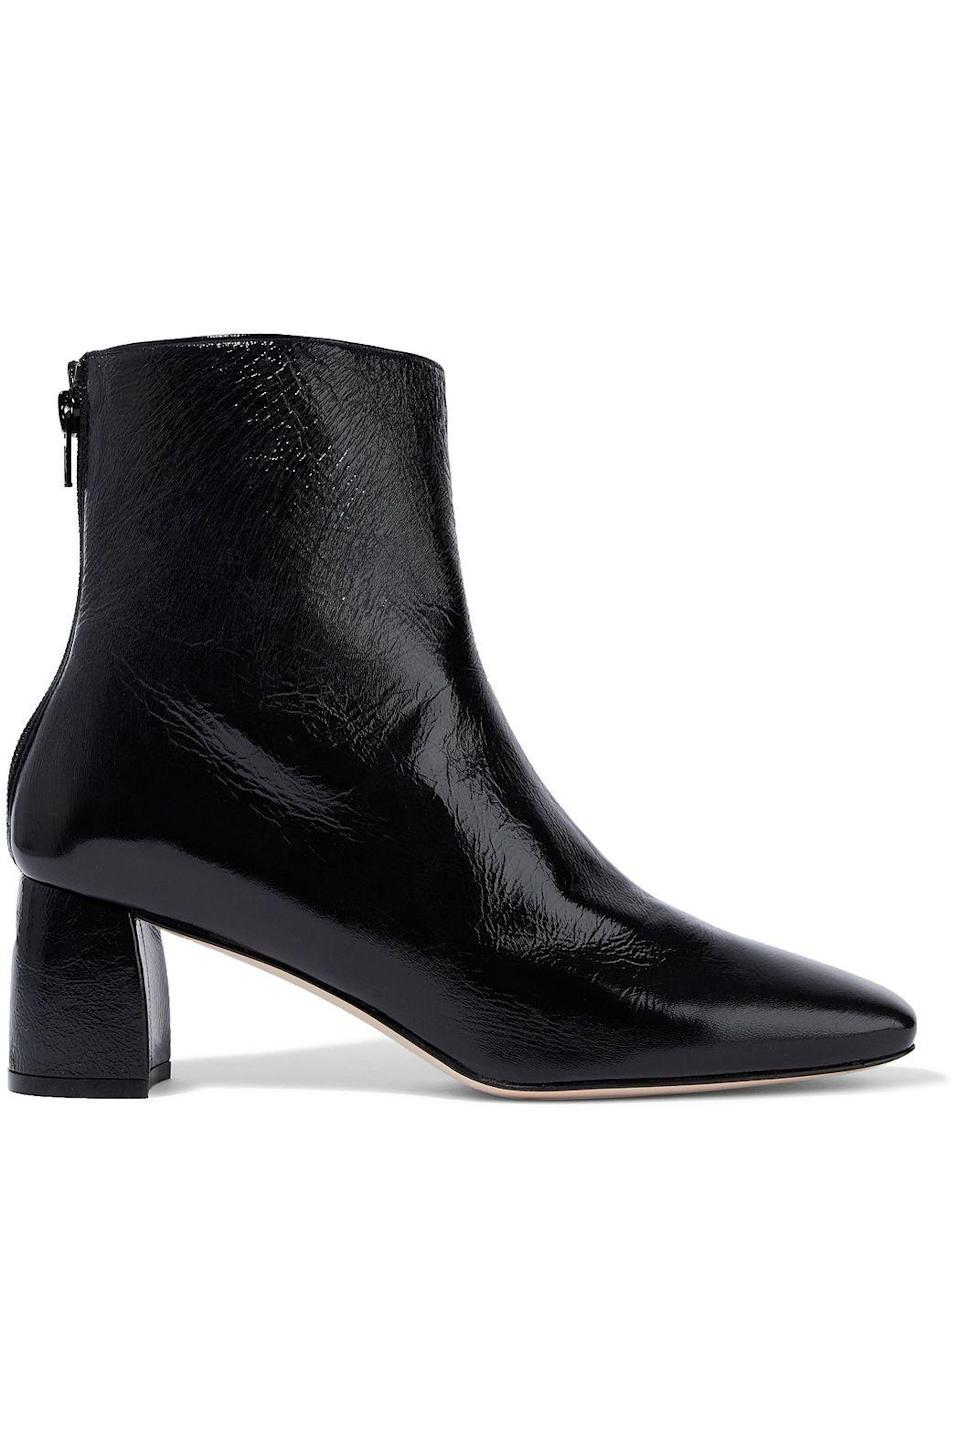 """<p><strong>Stuart Weitzman</strong></p><p>theoutnet.com</p><p><strong>$165.00</strong></p><p><a href=""""https://go.redirectingat.com?id=74968X1596630&url=https%3A%2F%2Fwww.theoutnet.com%2Fen-us%2Fshop%2Fproduct%2Fstuart-weitzman%2Fboots%2Fmid-heel-boots%2Fcrinkled-patent-leather-ankle-boots%2F7600457660315872&sref=https%3A%2F%2Fwww.marieclaire.com%2Ffashion%2Fg33594594%2Fthe-outnet-summer-sale-2020%2F"""" rel=""""nofollow noopener"""" target=""""_blank"""" data-ylk=""""slk:SHOP IT"""" class=""""link rapid-noclick-resp"""">SHOP IT</a></p><p>You're <em>always</em> in need of a classic pair of black ankle boots and this designer find for under $200 is basically a steal.</p>"""